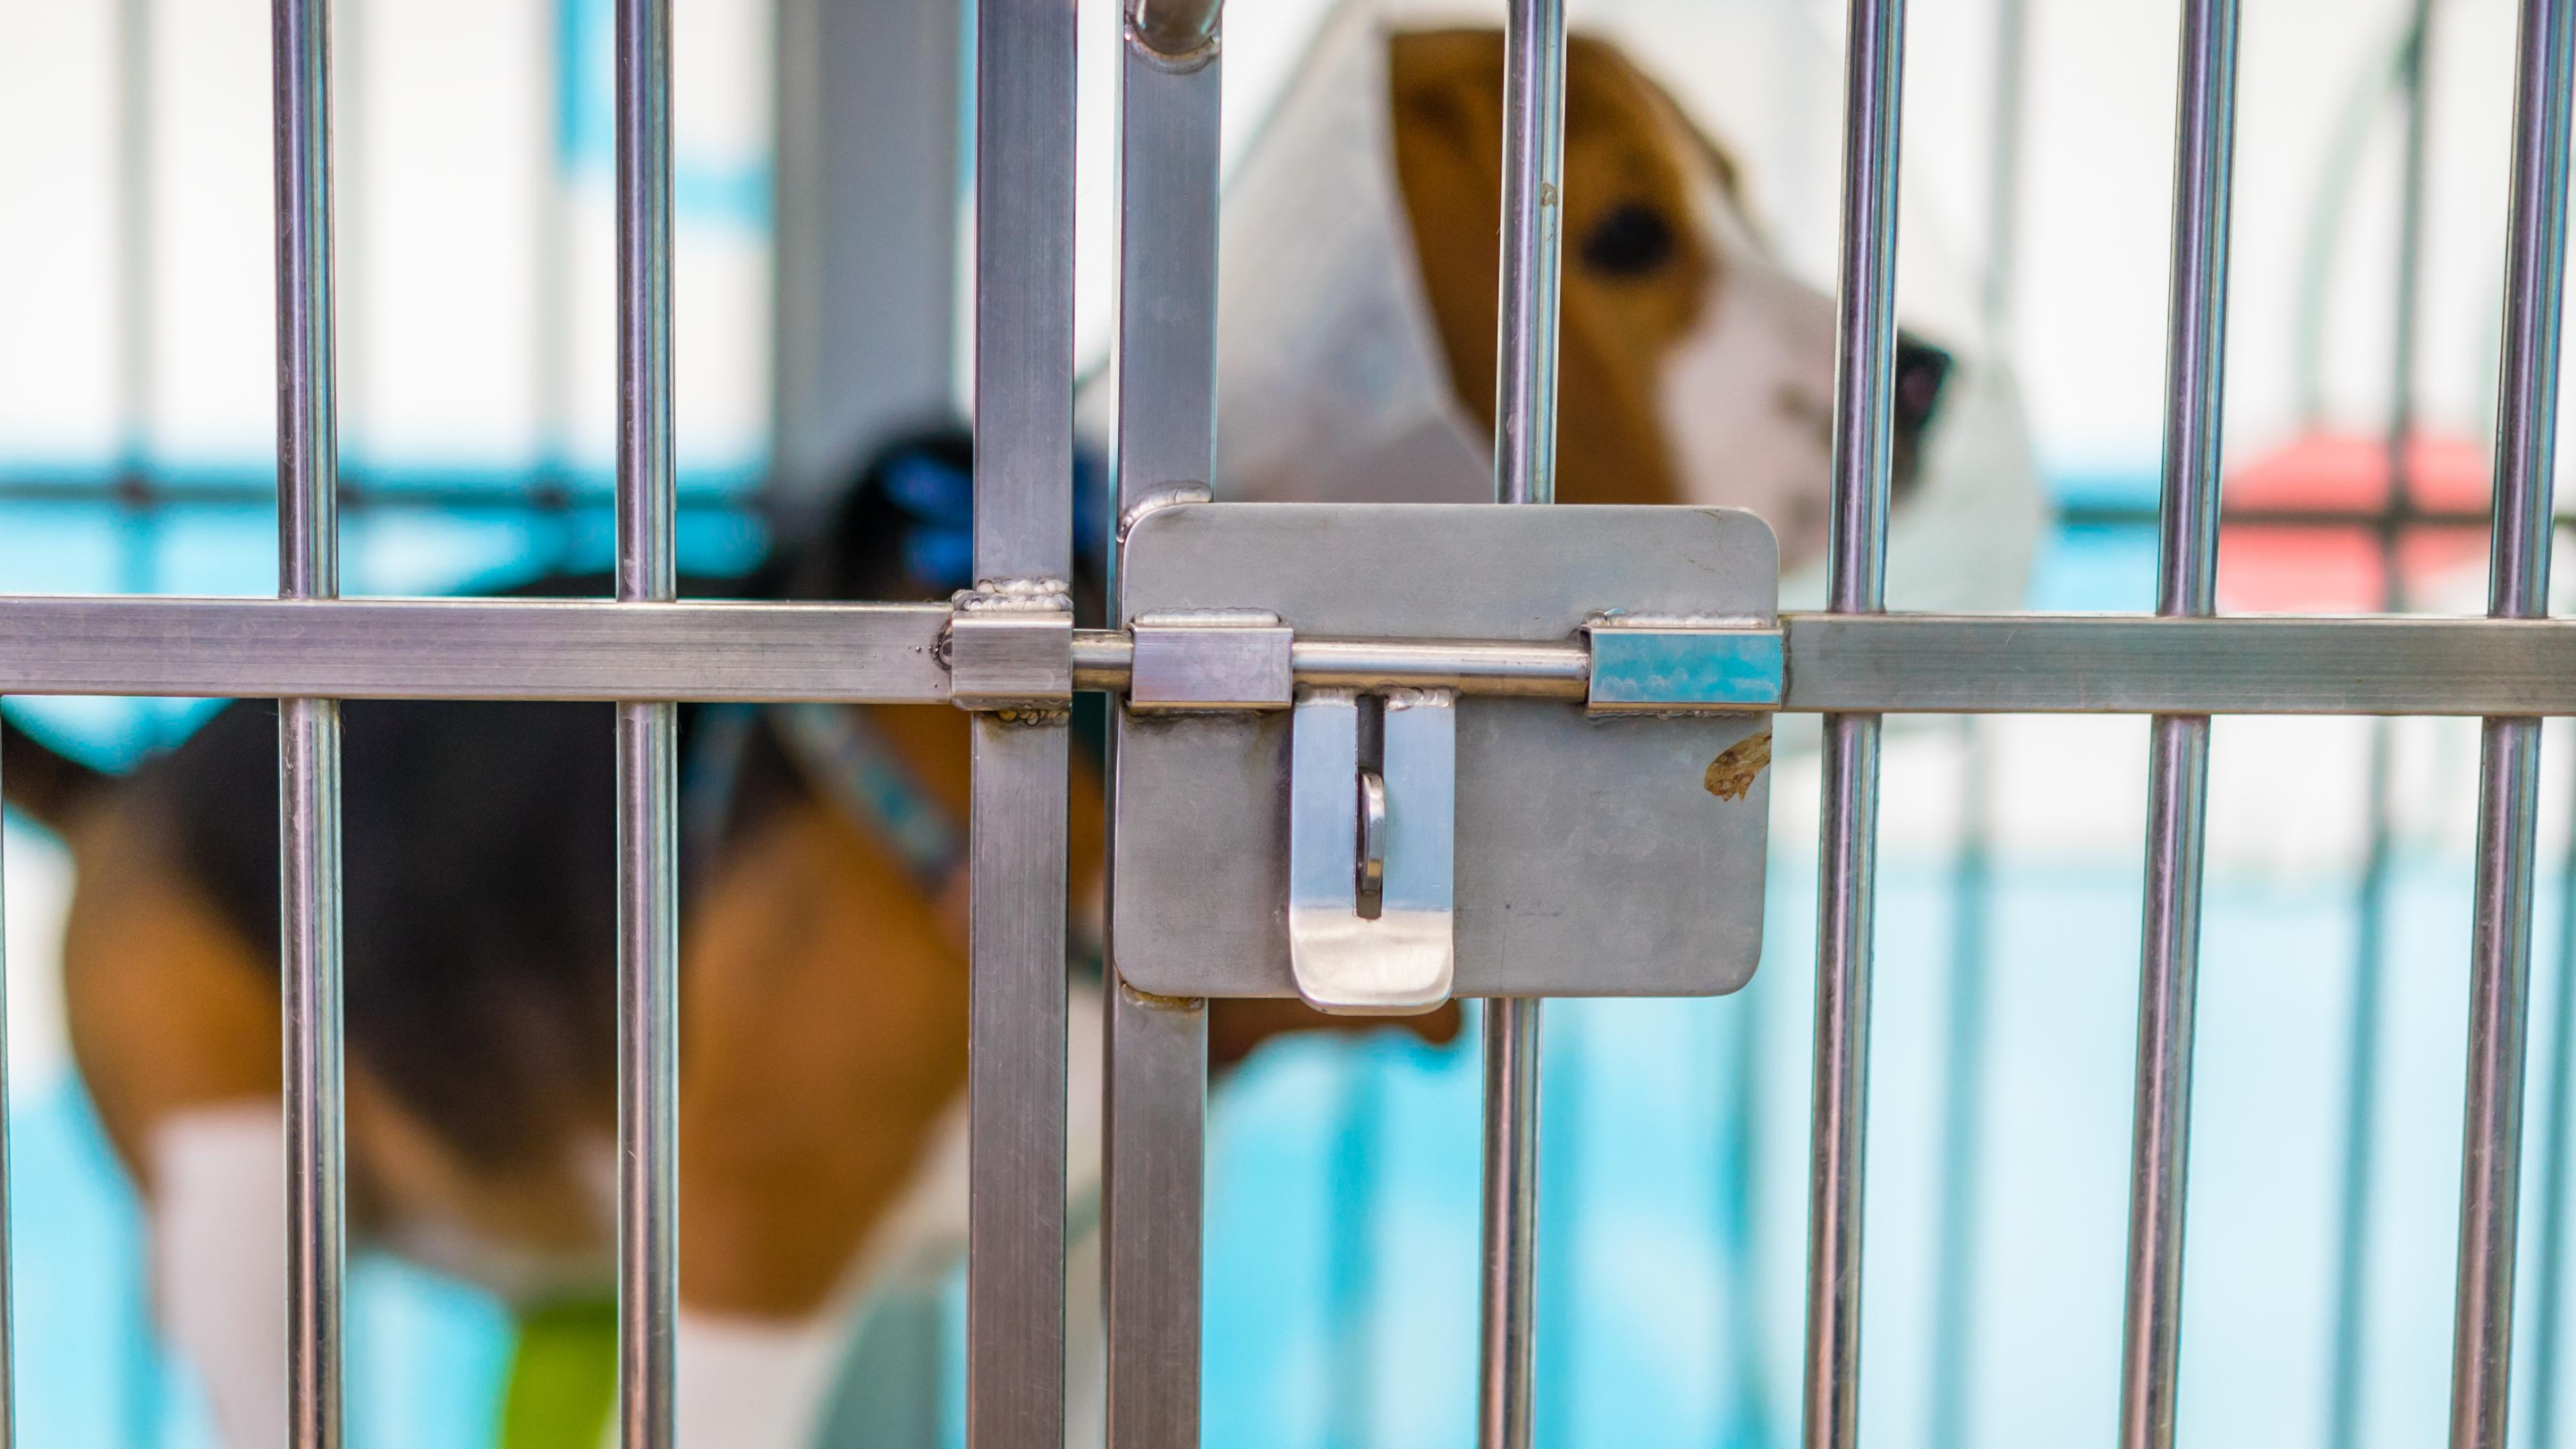 A beagle stands in a metal cage